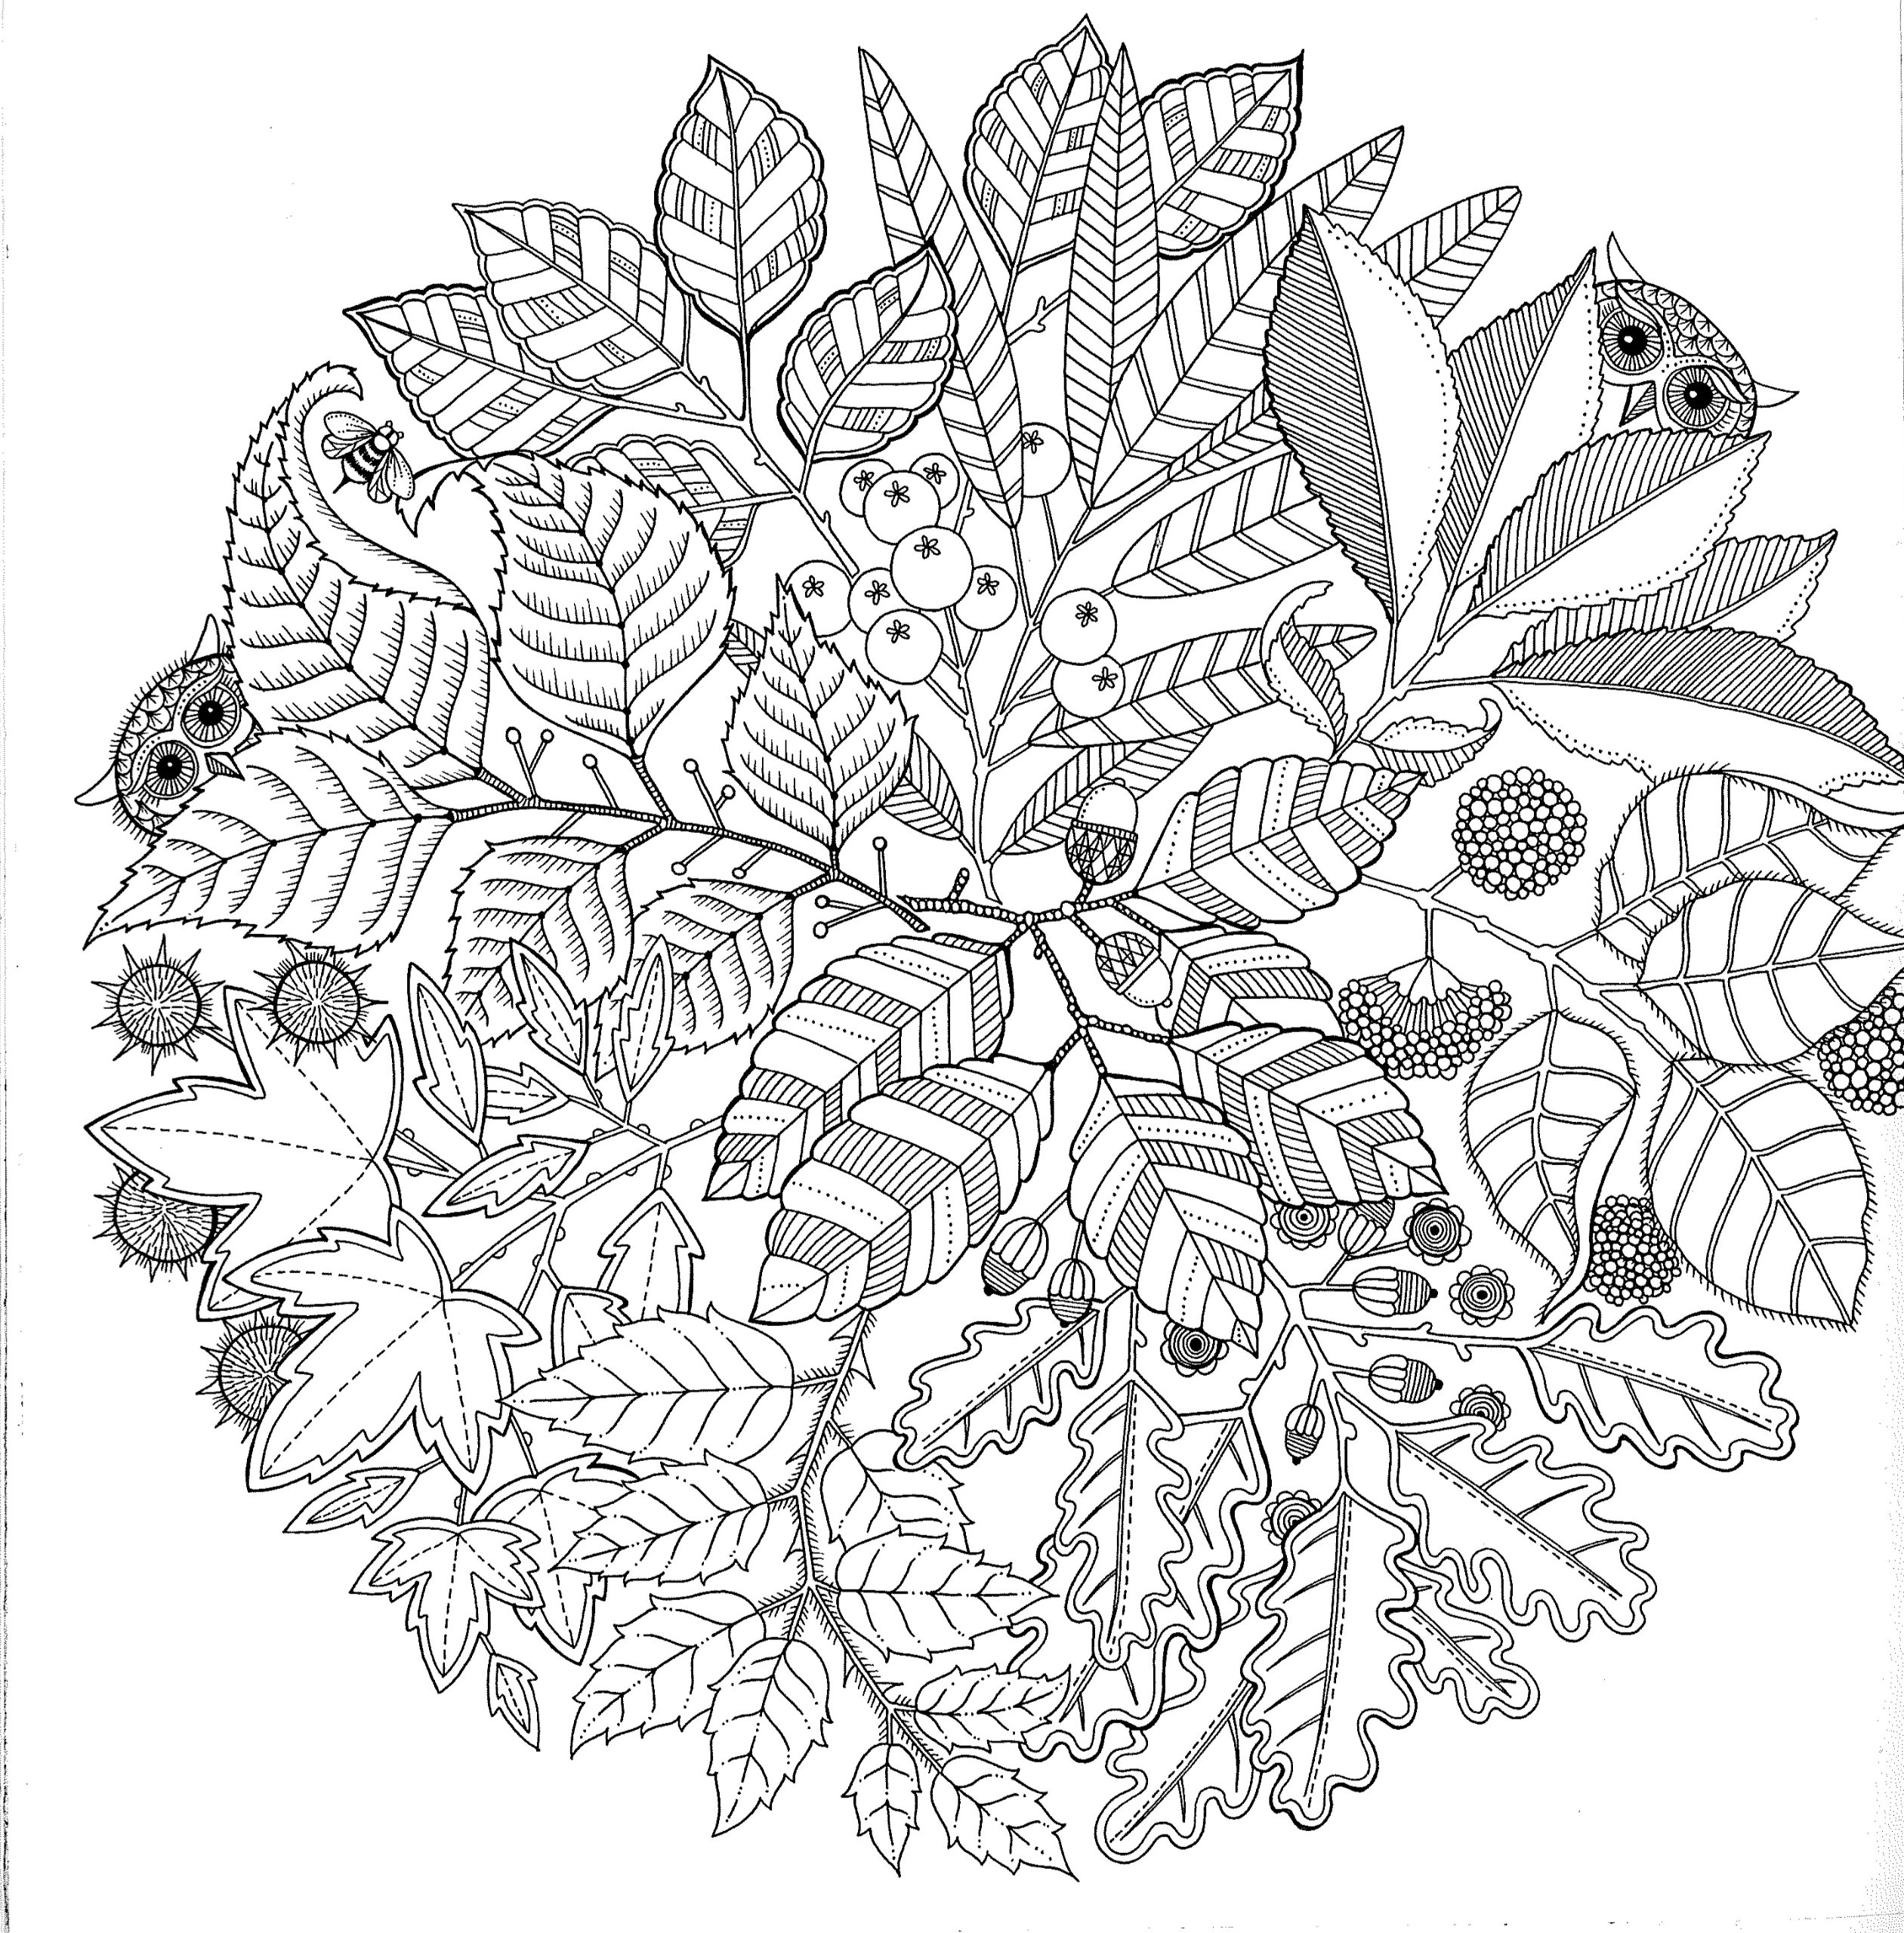 coloring images free printable abstract coloring pages for adults coloring images